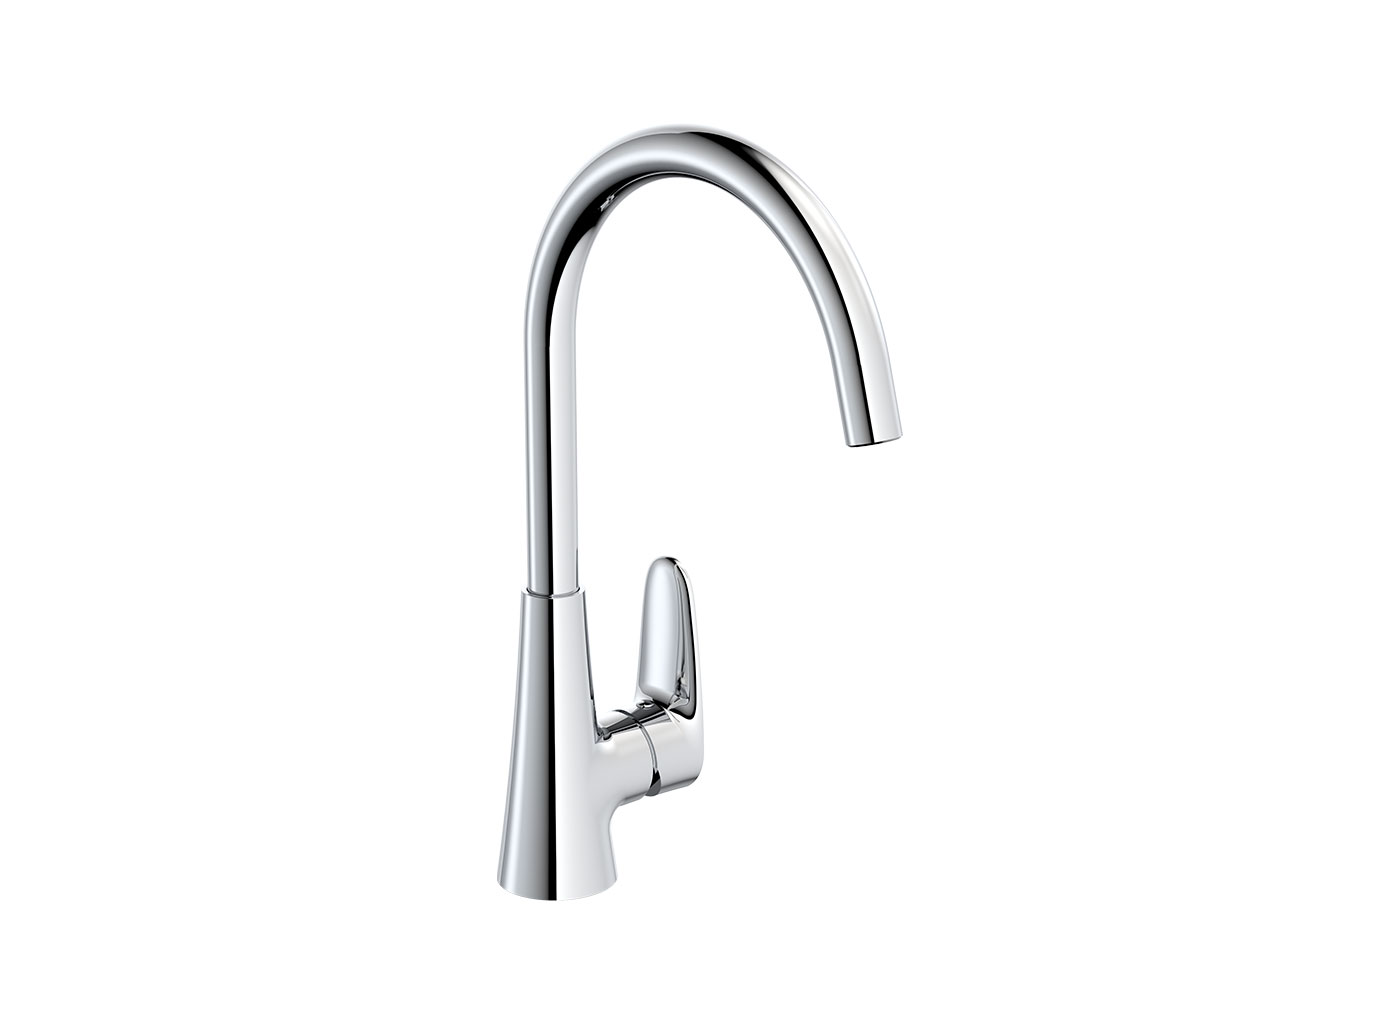 Stylus continues to bring you simplicity and functionality across contemporary designs to suit any bathroom and budget The Flare range offers a sleek